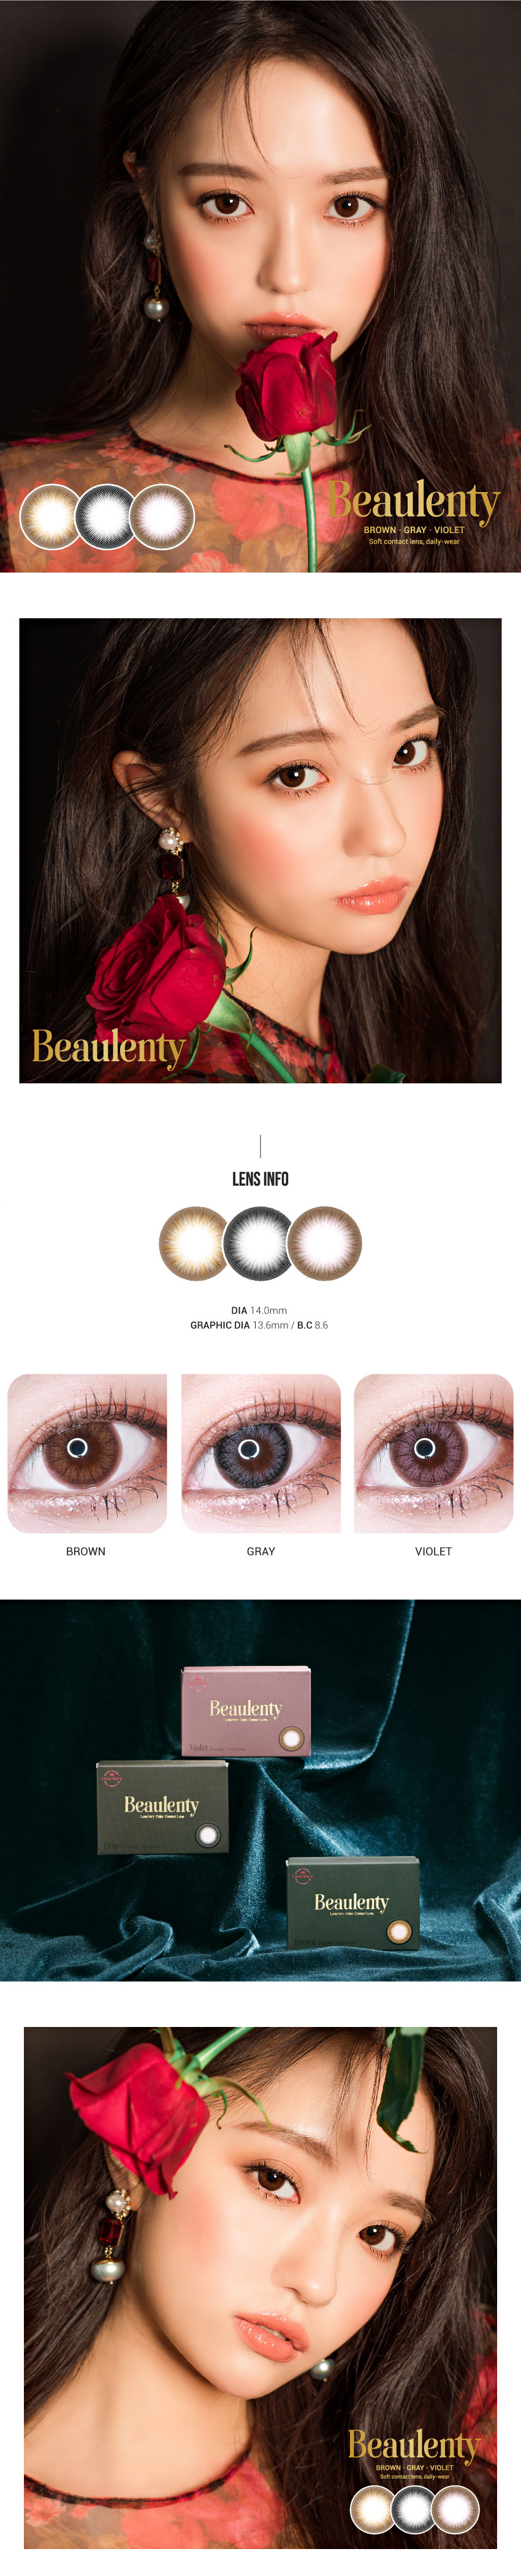 beaulenty-circle-lens-new1.jpg